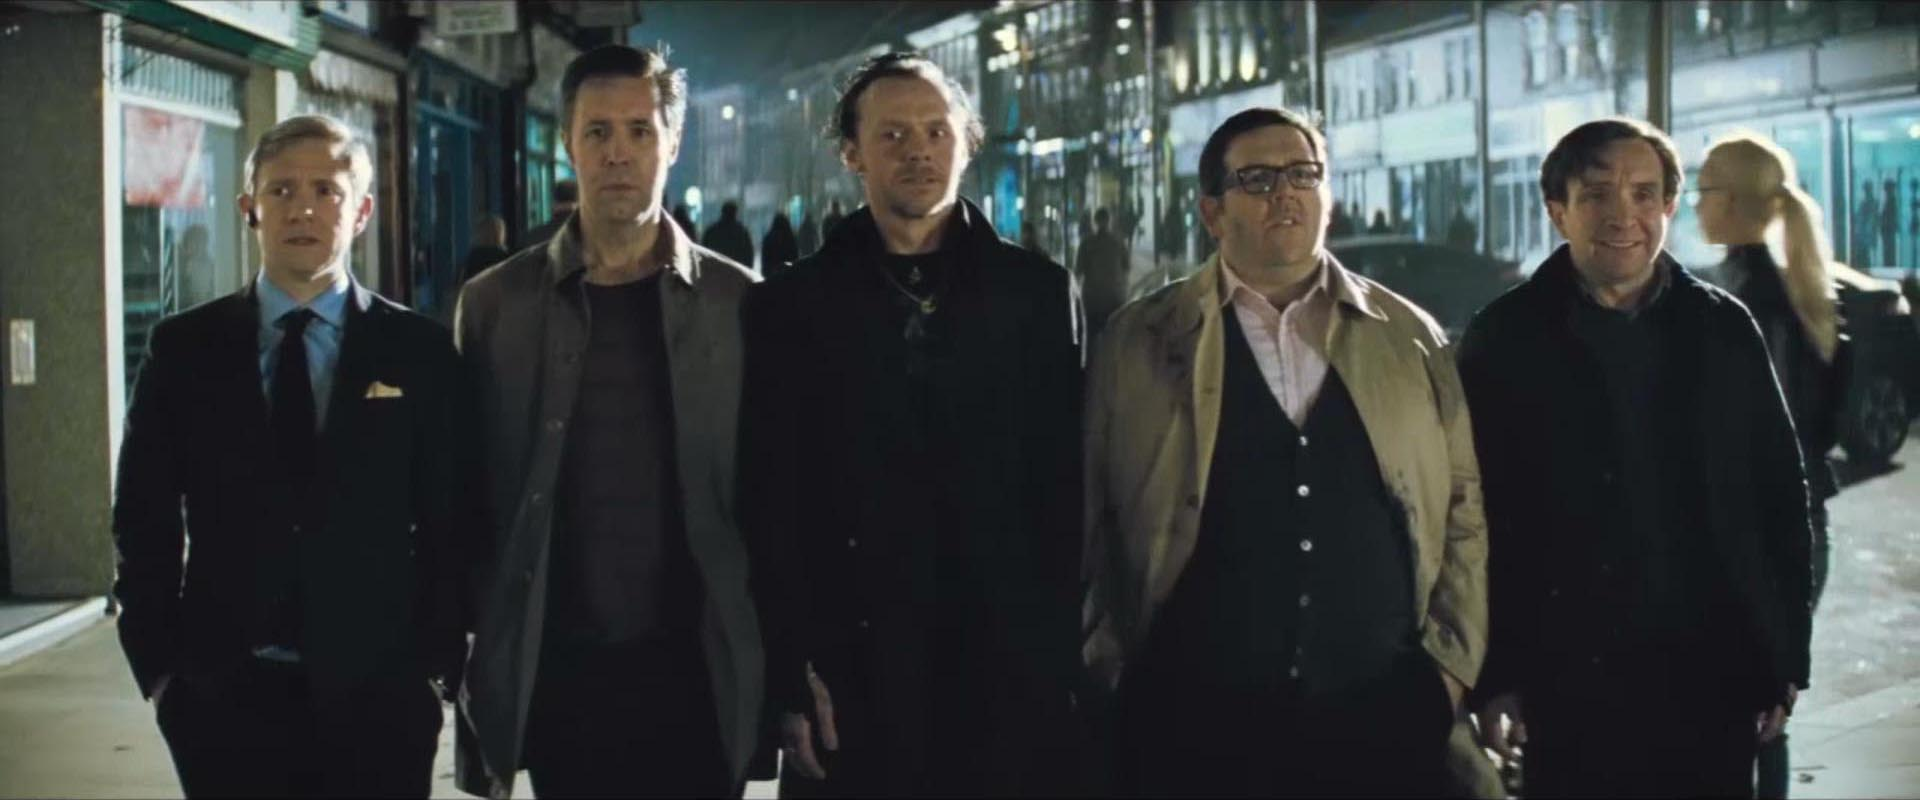 The World's End  revolves around an epic pub crawl interrupted  by an alien invasion (Picture: Focus Features)